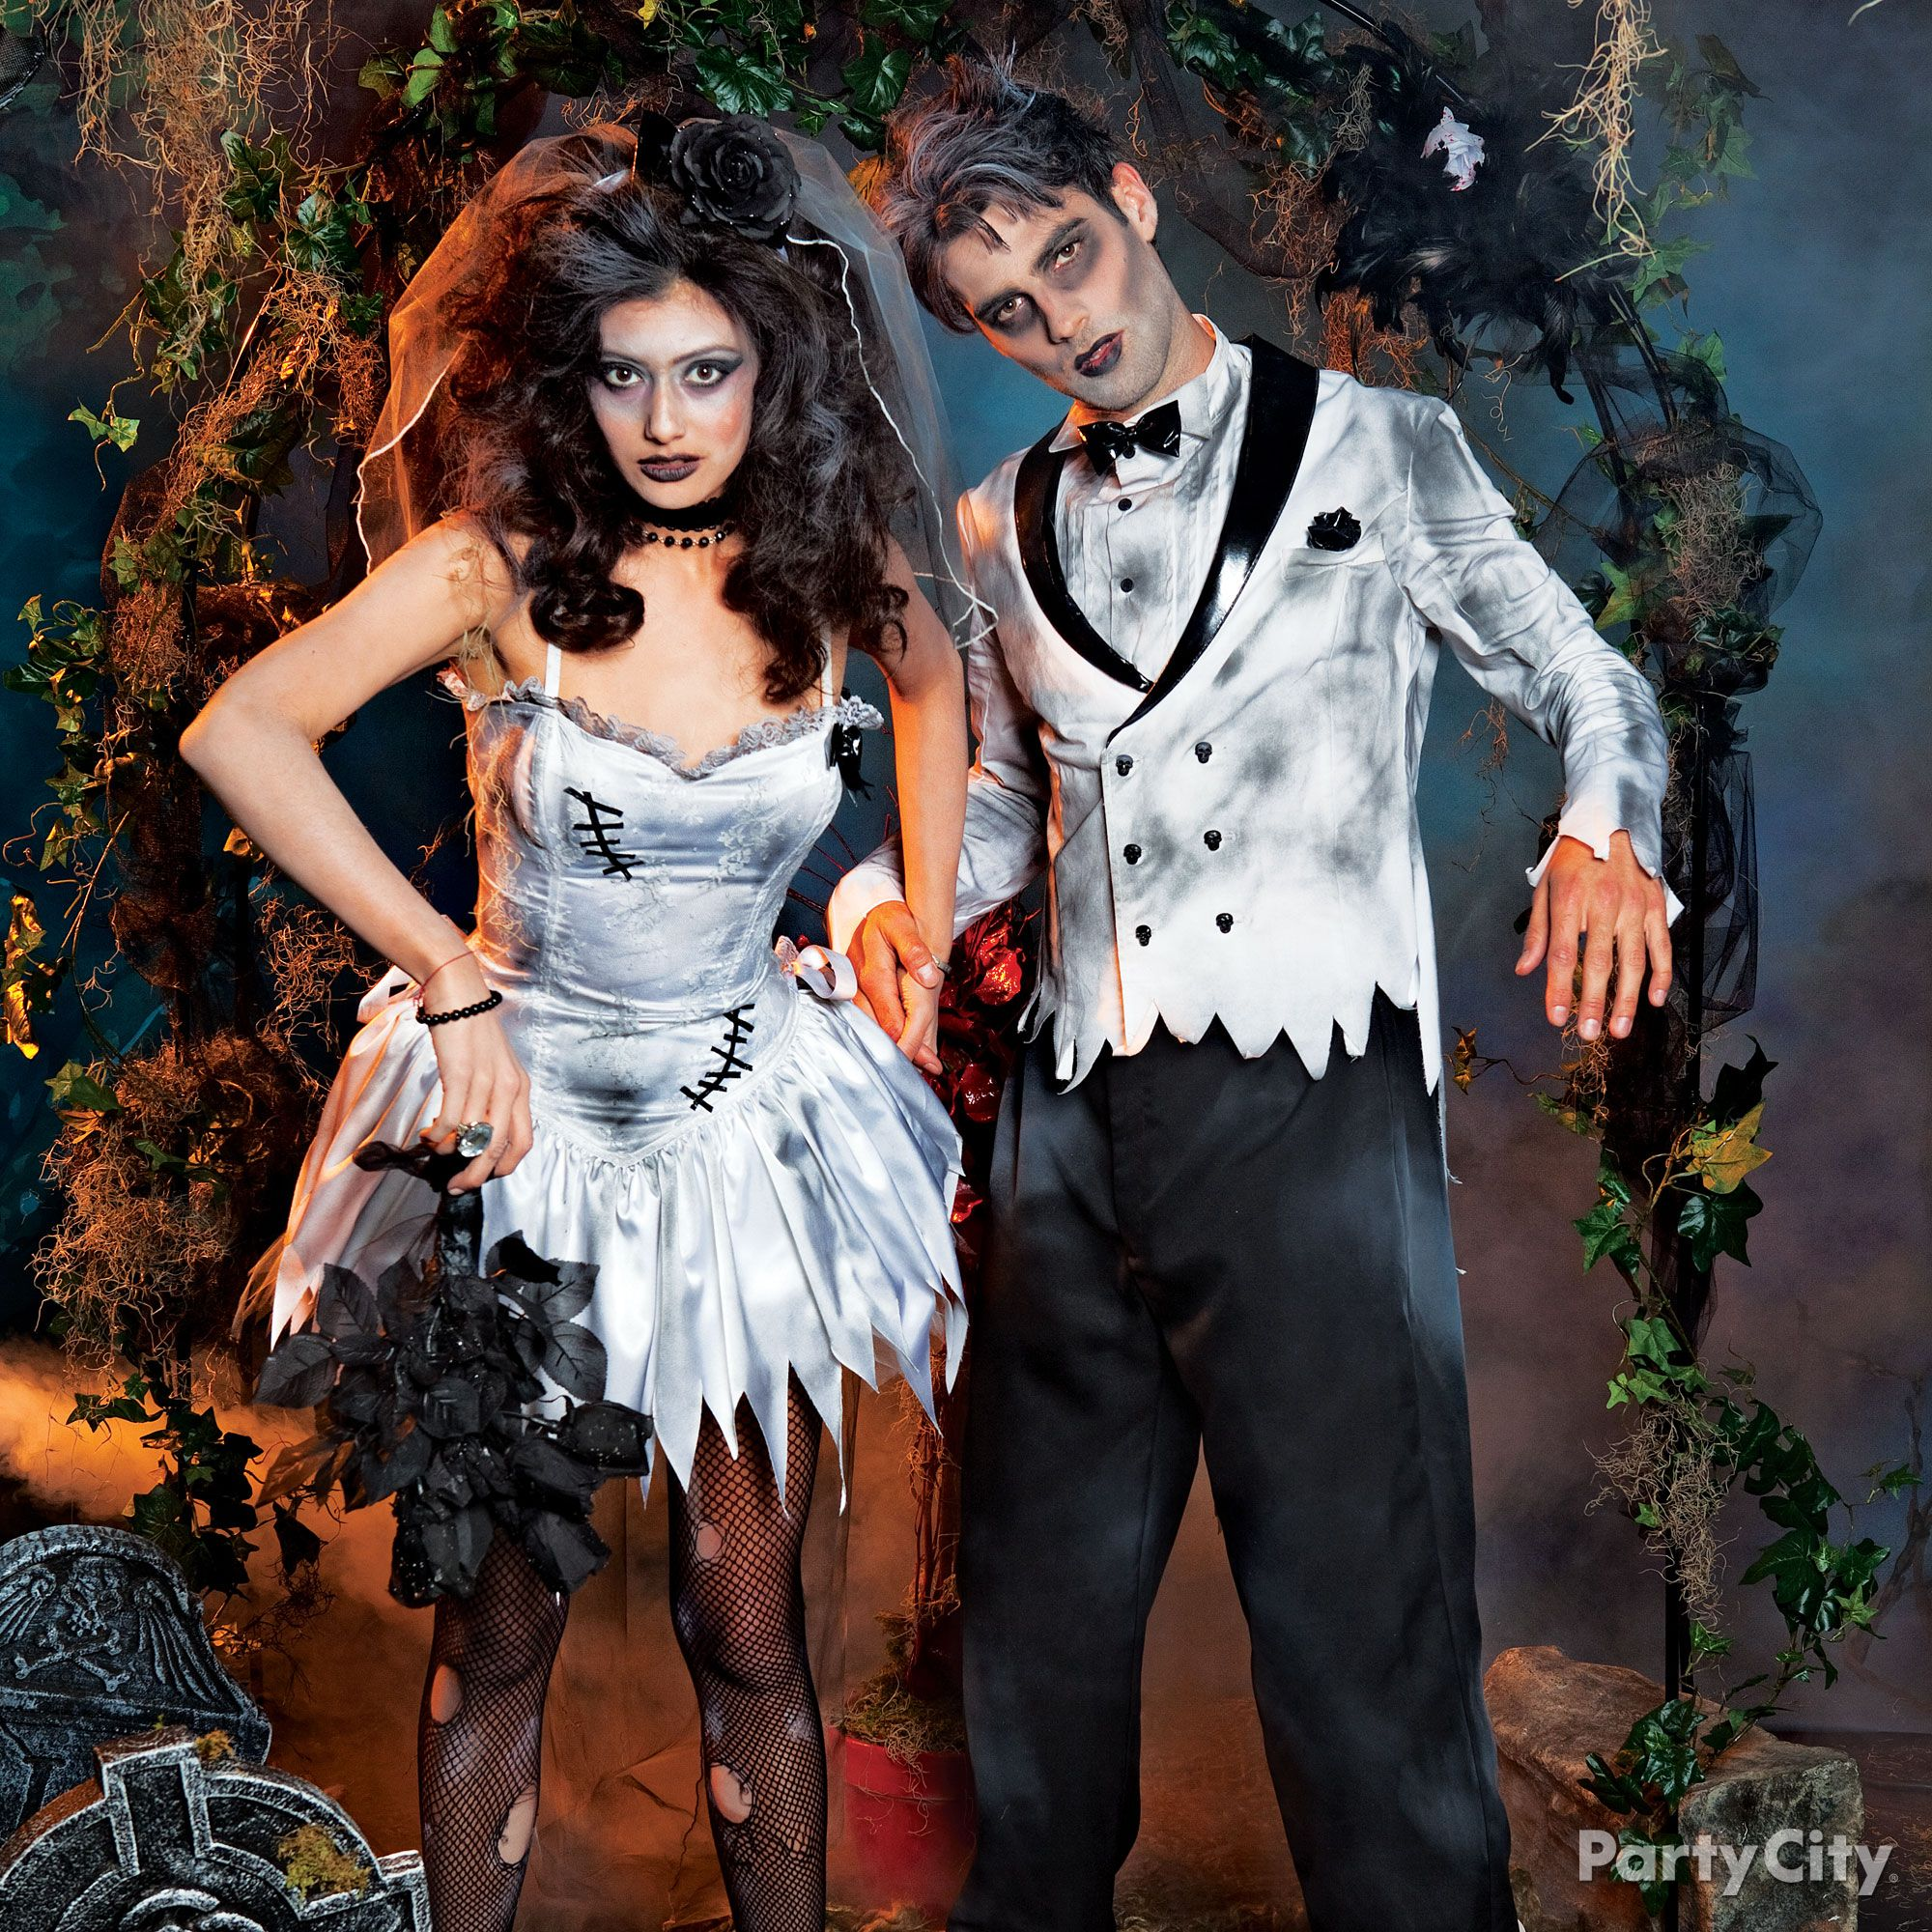 Hey baby wanna get hitched our zombie bride and groom canut wait